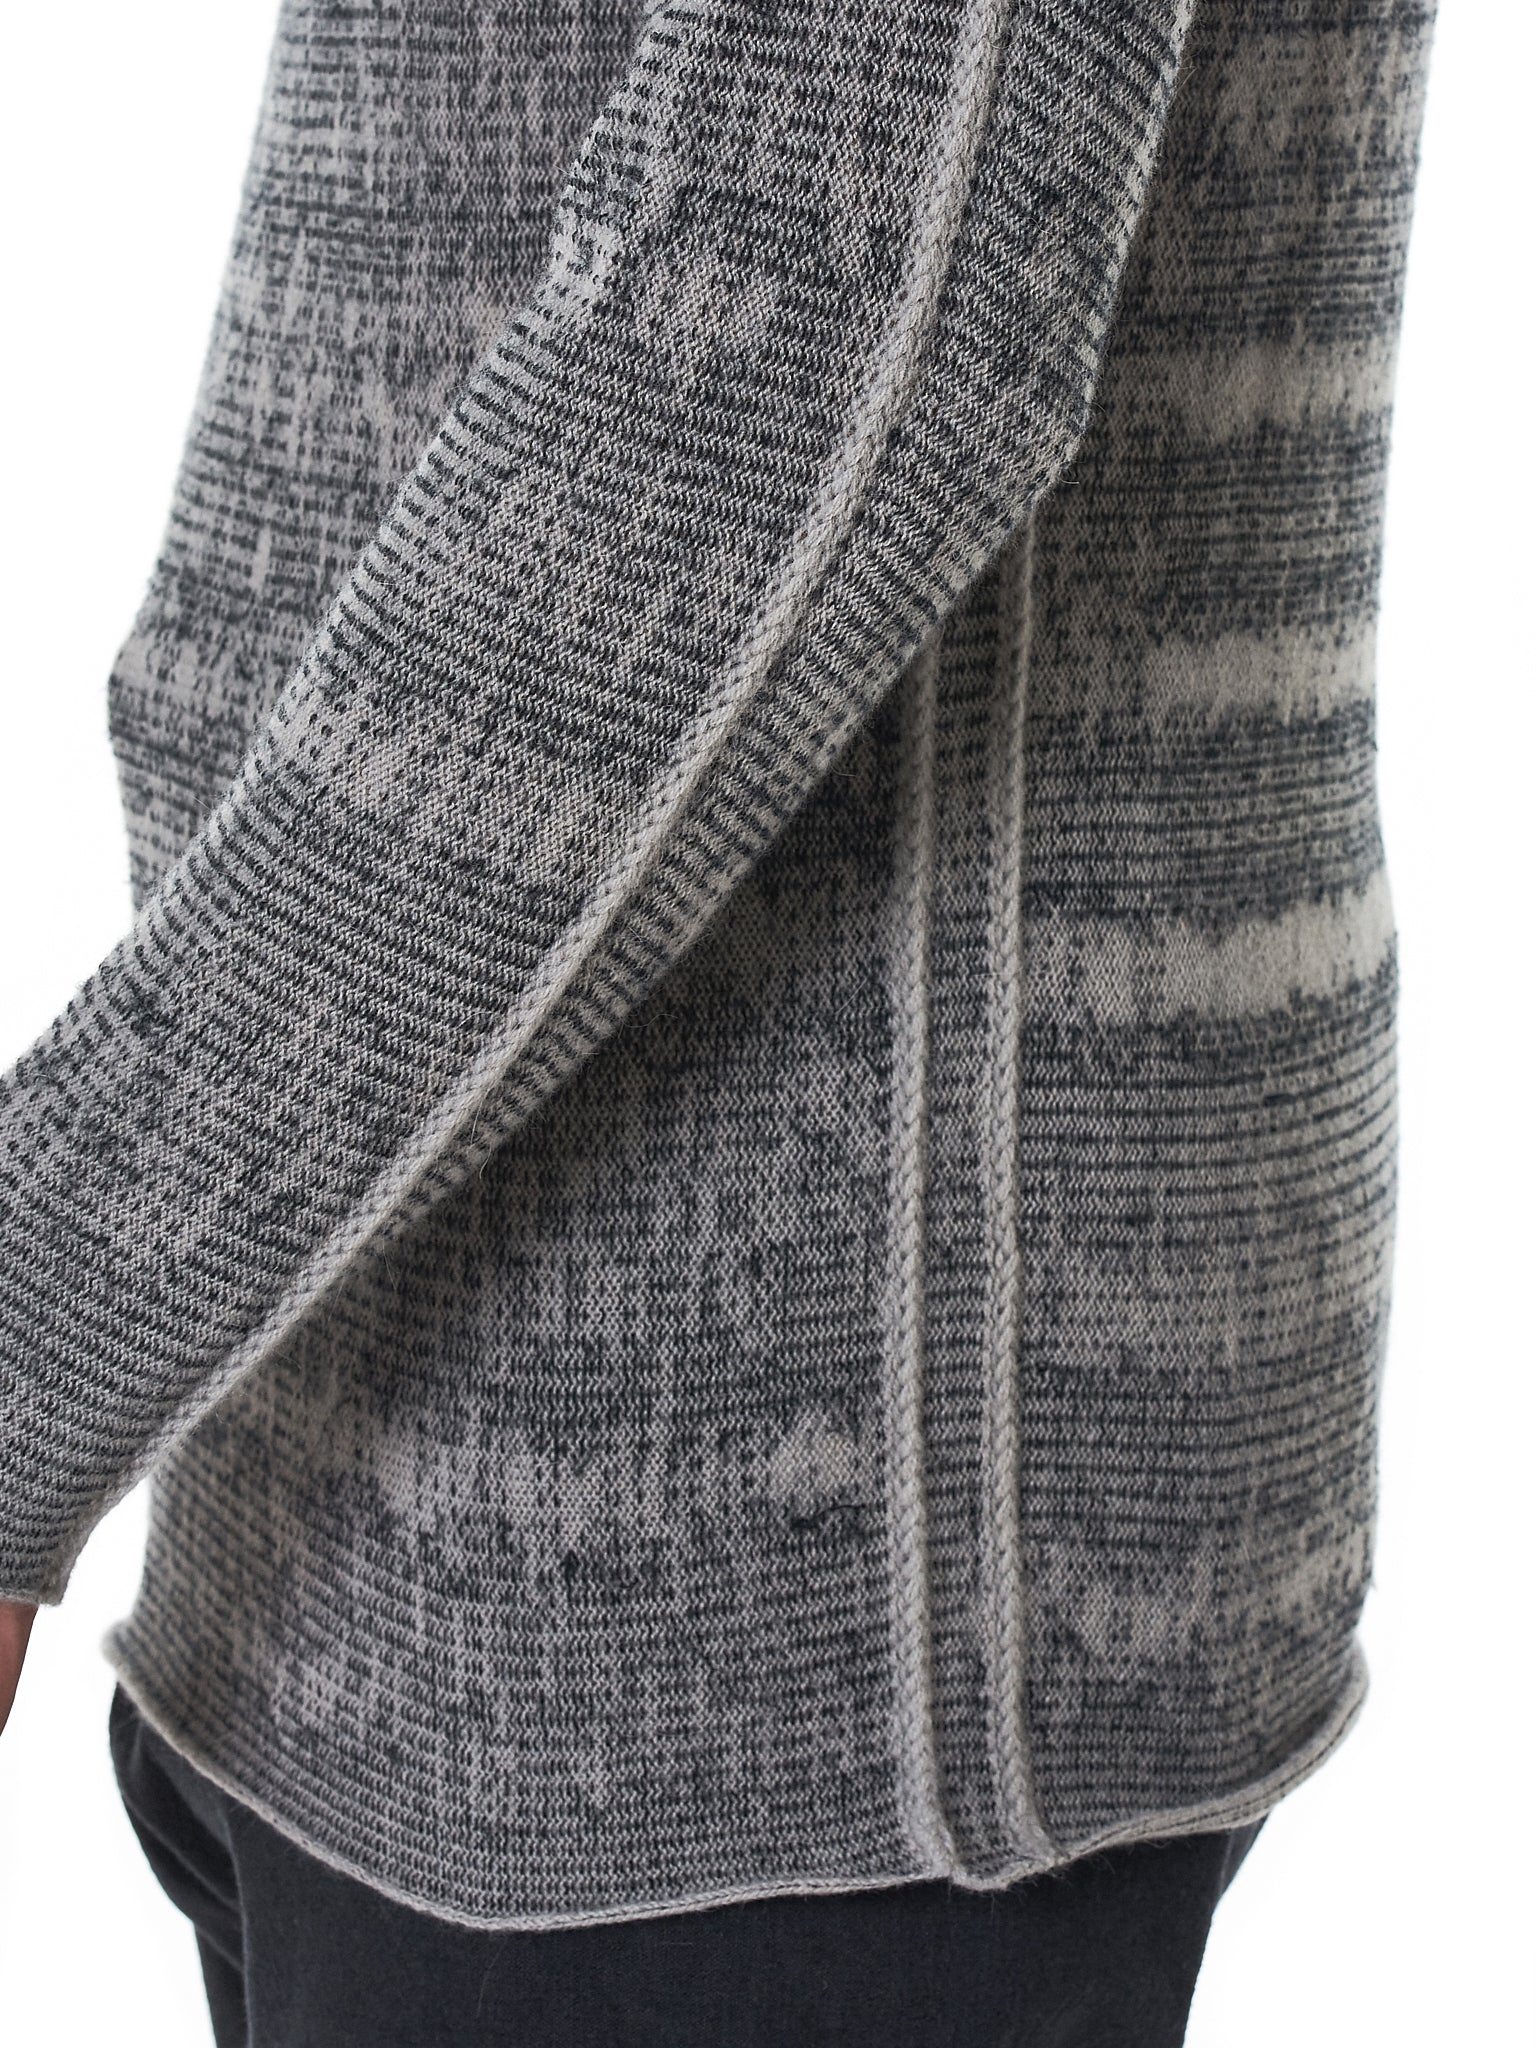 Label Under Construction Sweater - Hlorenzo Detail 1